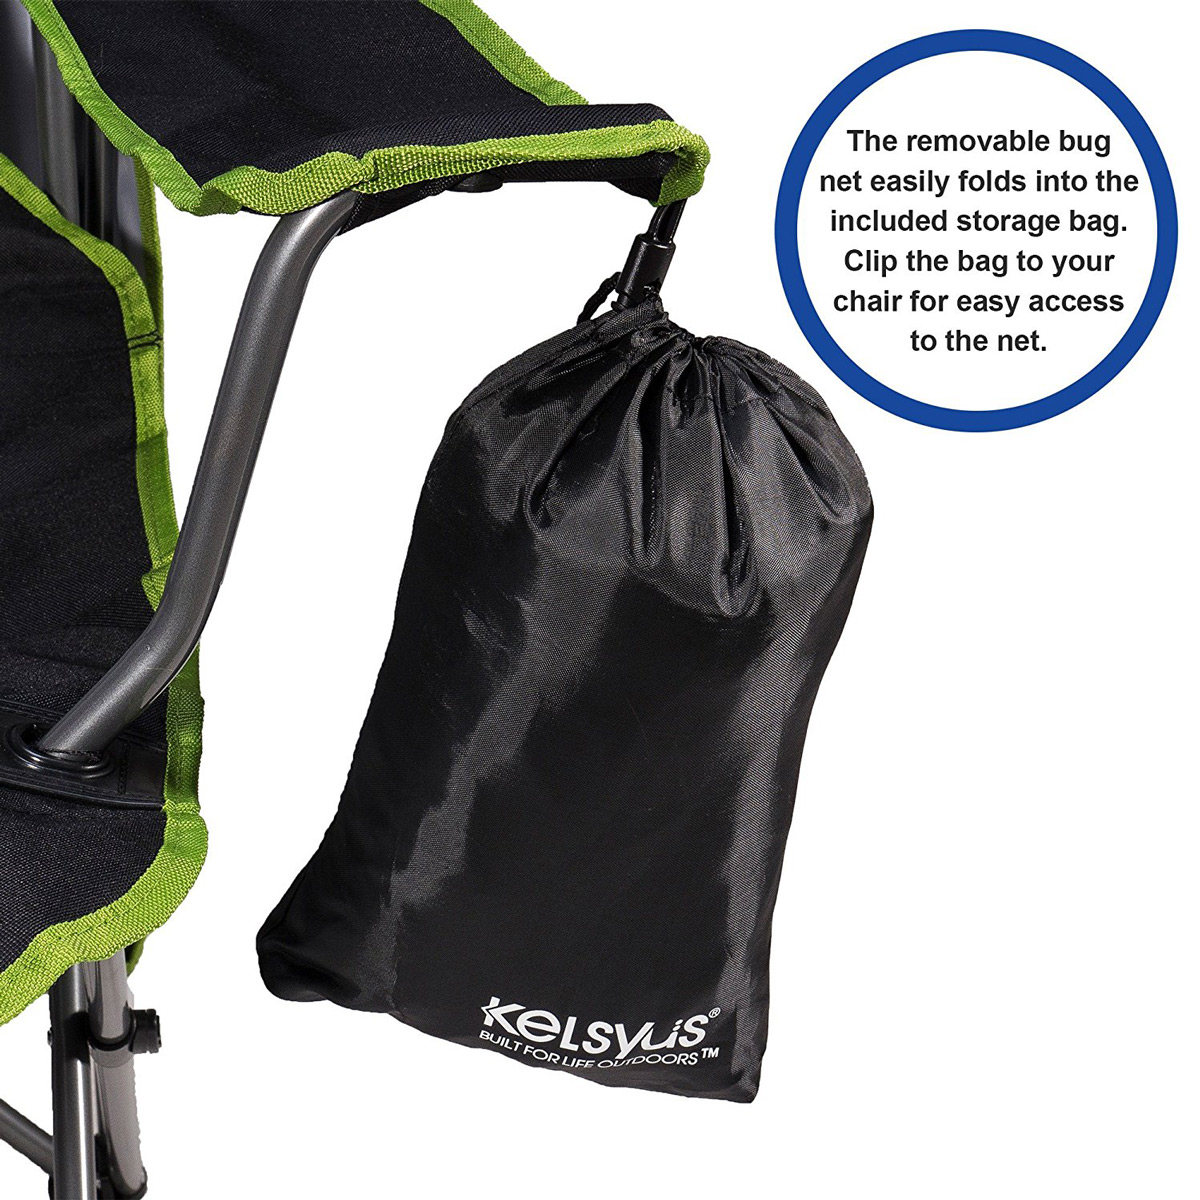 Kelsyus Canopy Chair with Removable Mosquito / Bug Net  sc 1 st  The Green Head & Kelsyus Canopy Chair with Removable Mosquito / Bug Net - The Green ...